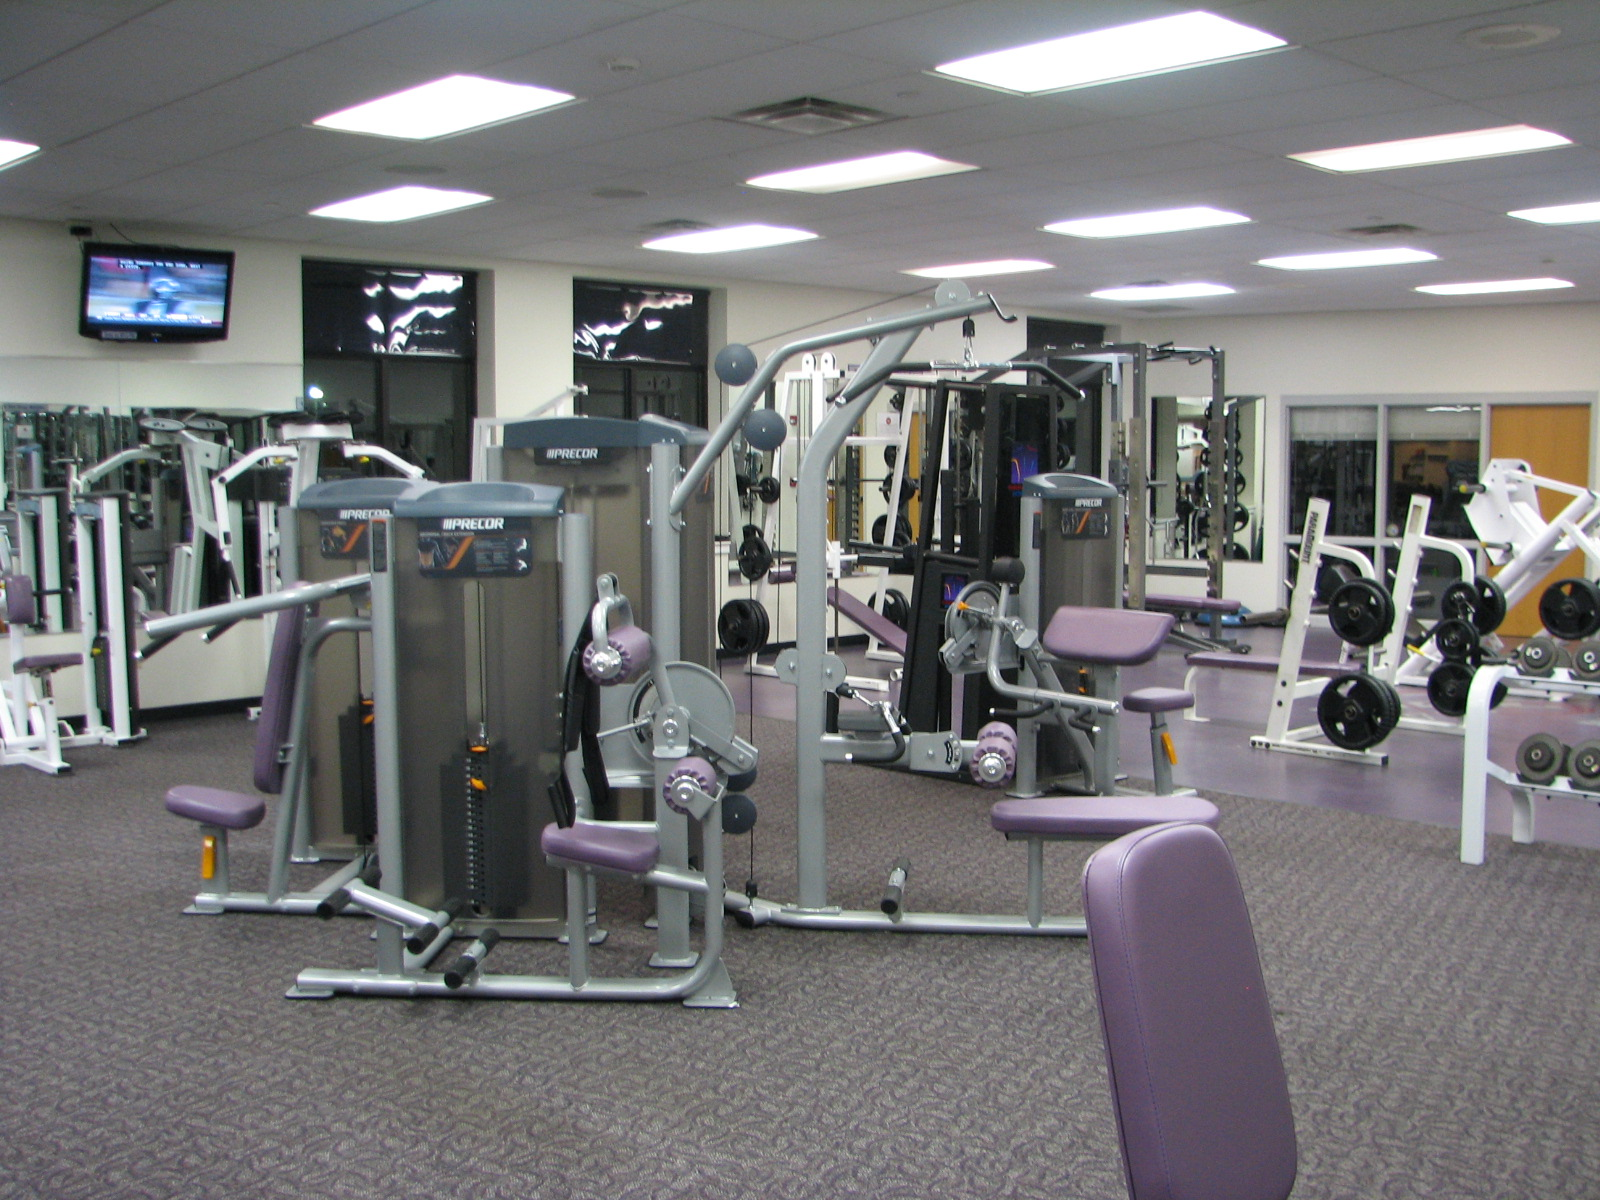 Buy Fitness Equipment at % off MSRP from Fitness Superstore. We sell new and used gym equipment including Precor, Life Fitness, Cybex, Star Trac, and StairMaster. Buy Ellipticals, Treadmills, Exercise Bikes, Stair Stepper, and Strength Equipment - Nationwide and Worldwide.